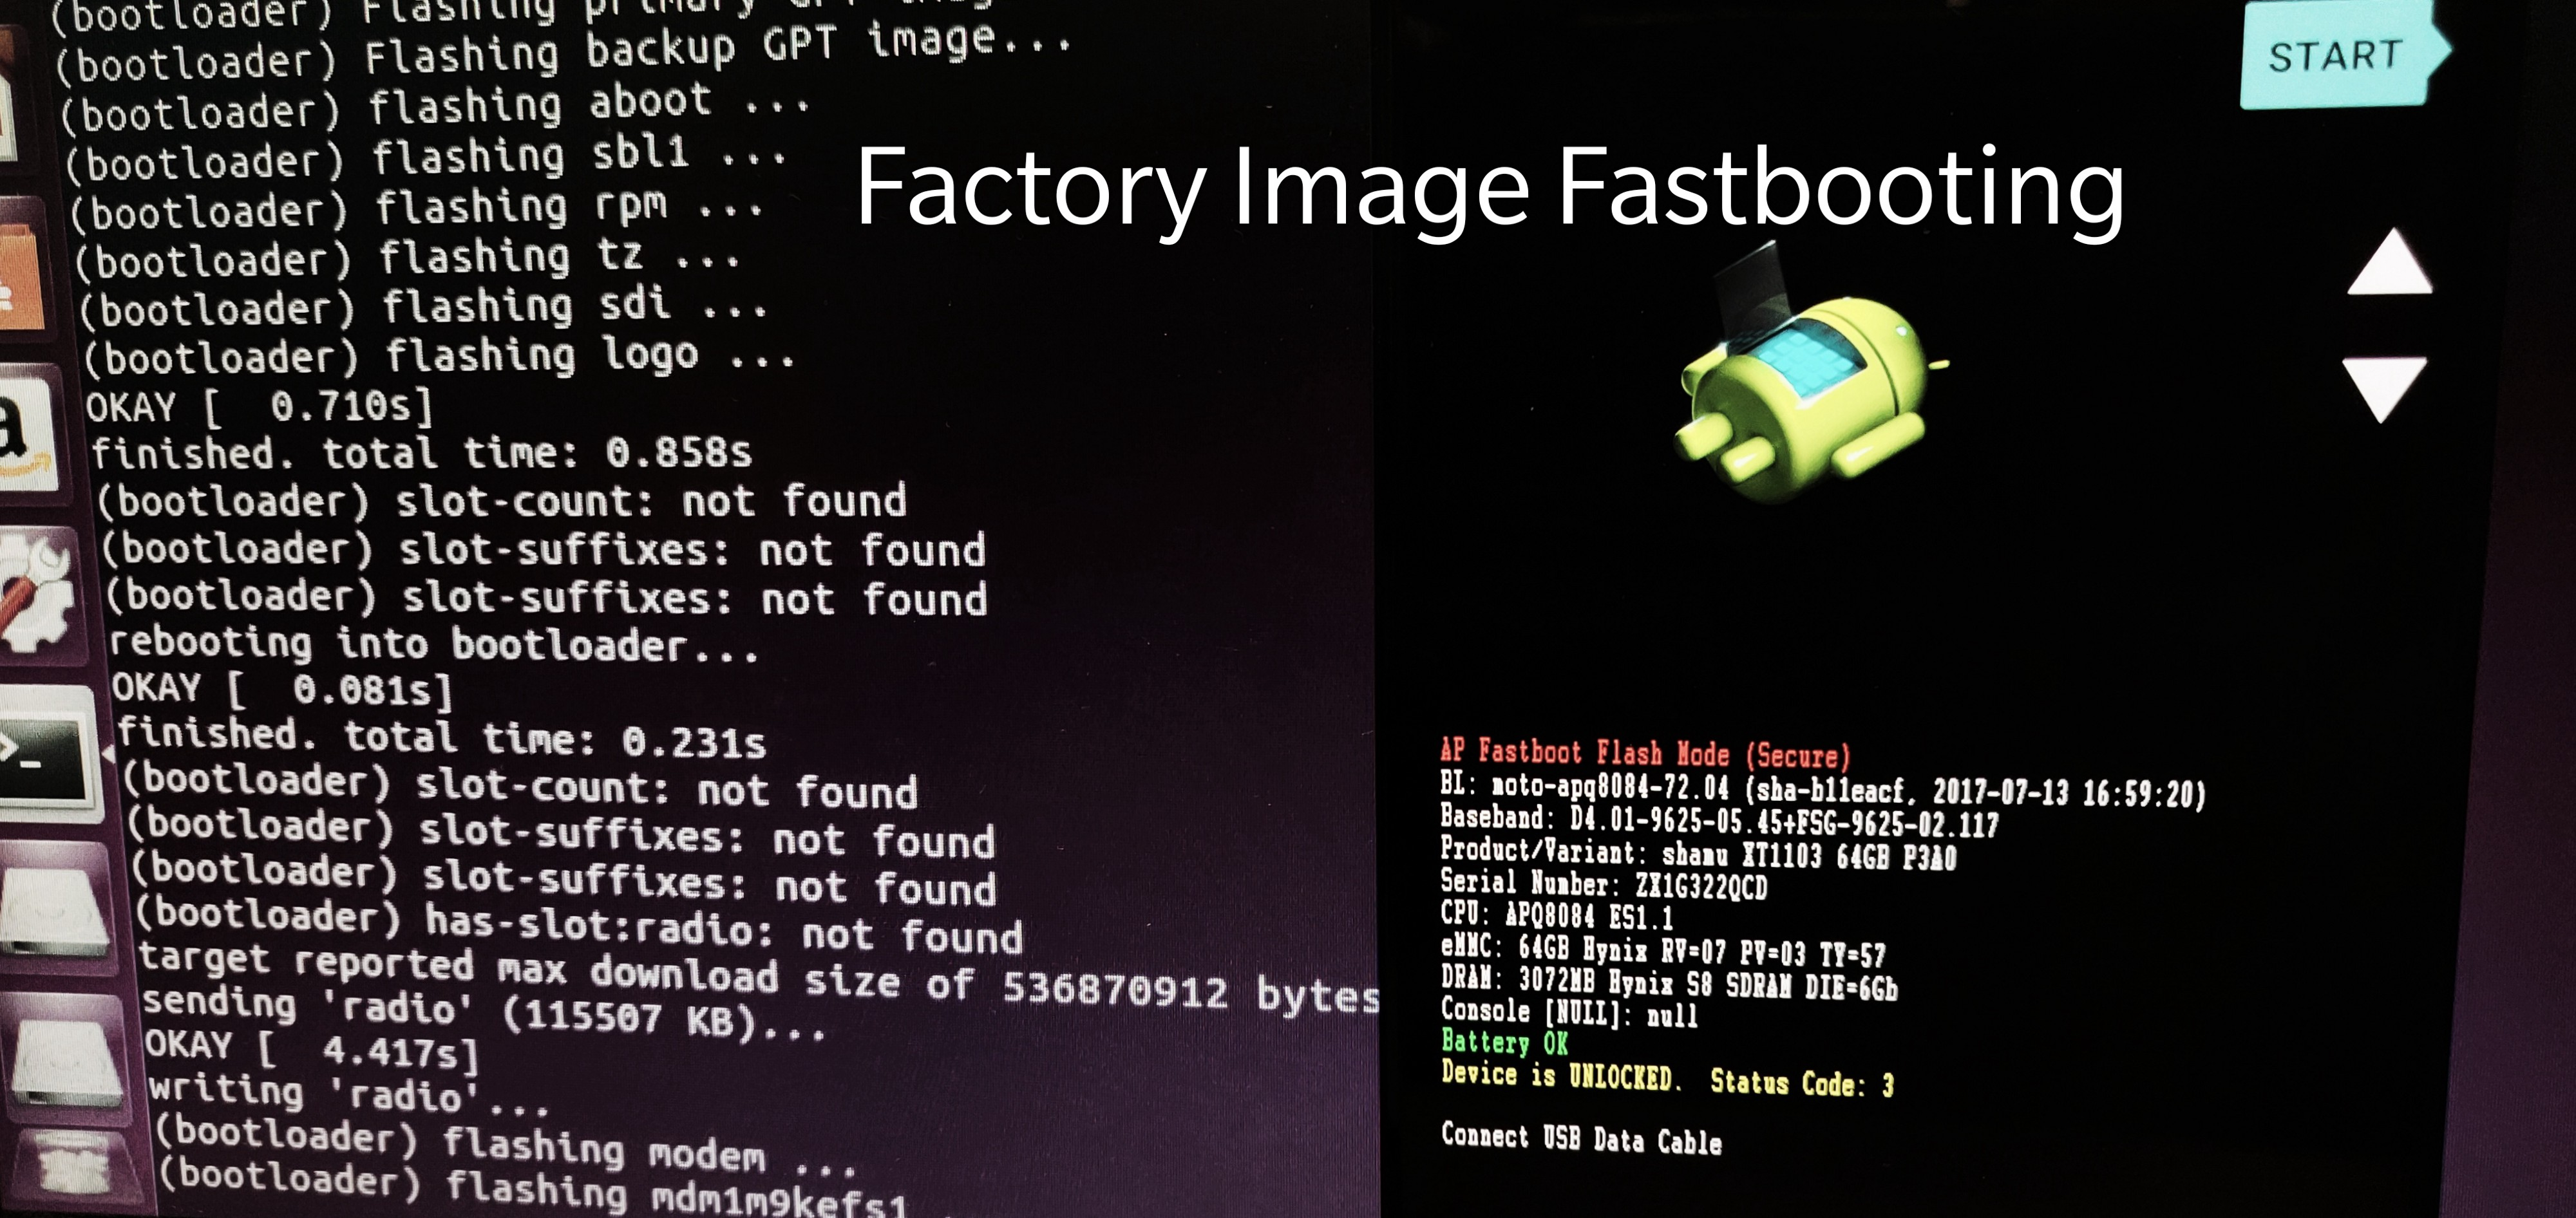 Fastbooting with Android Factory Image - Soham Bhattacharya